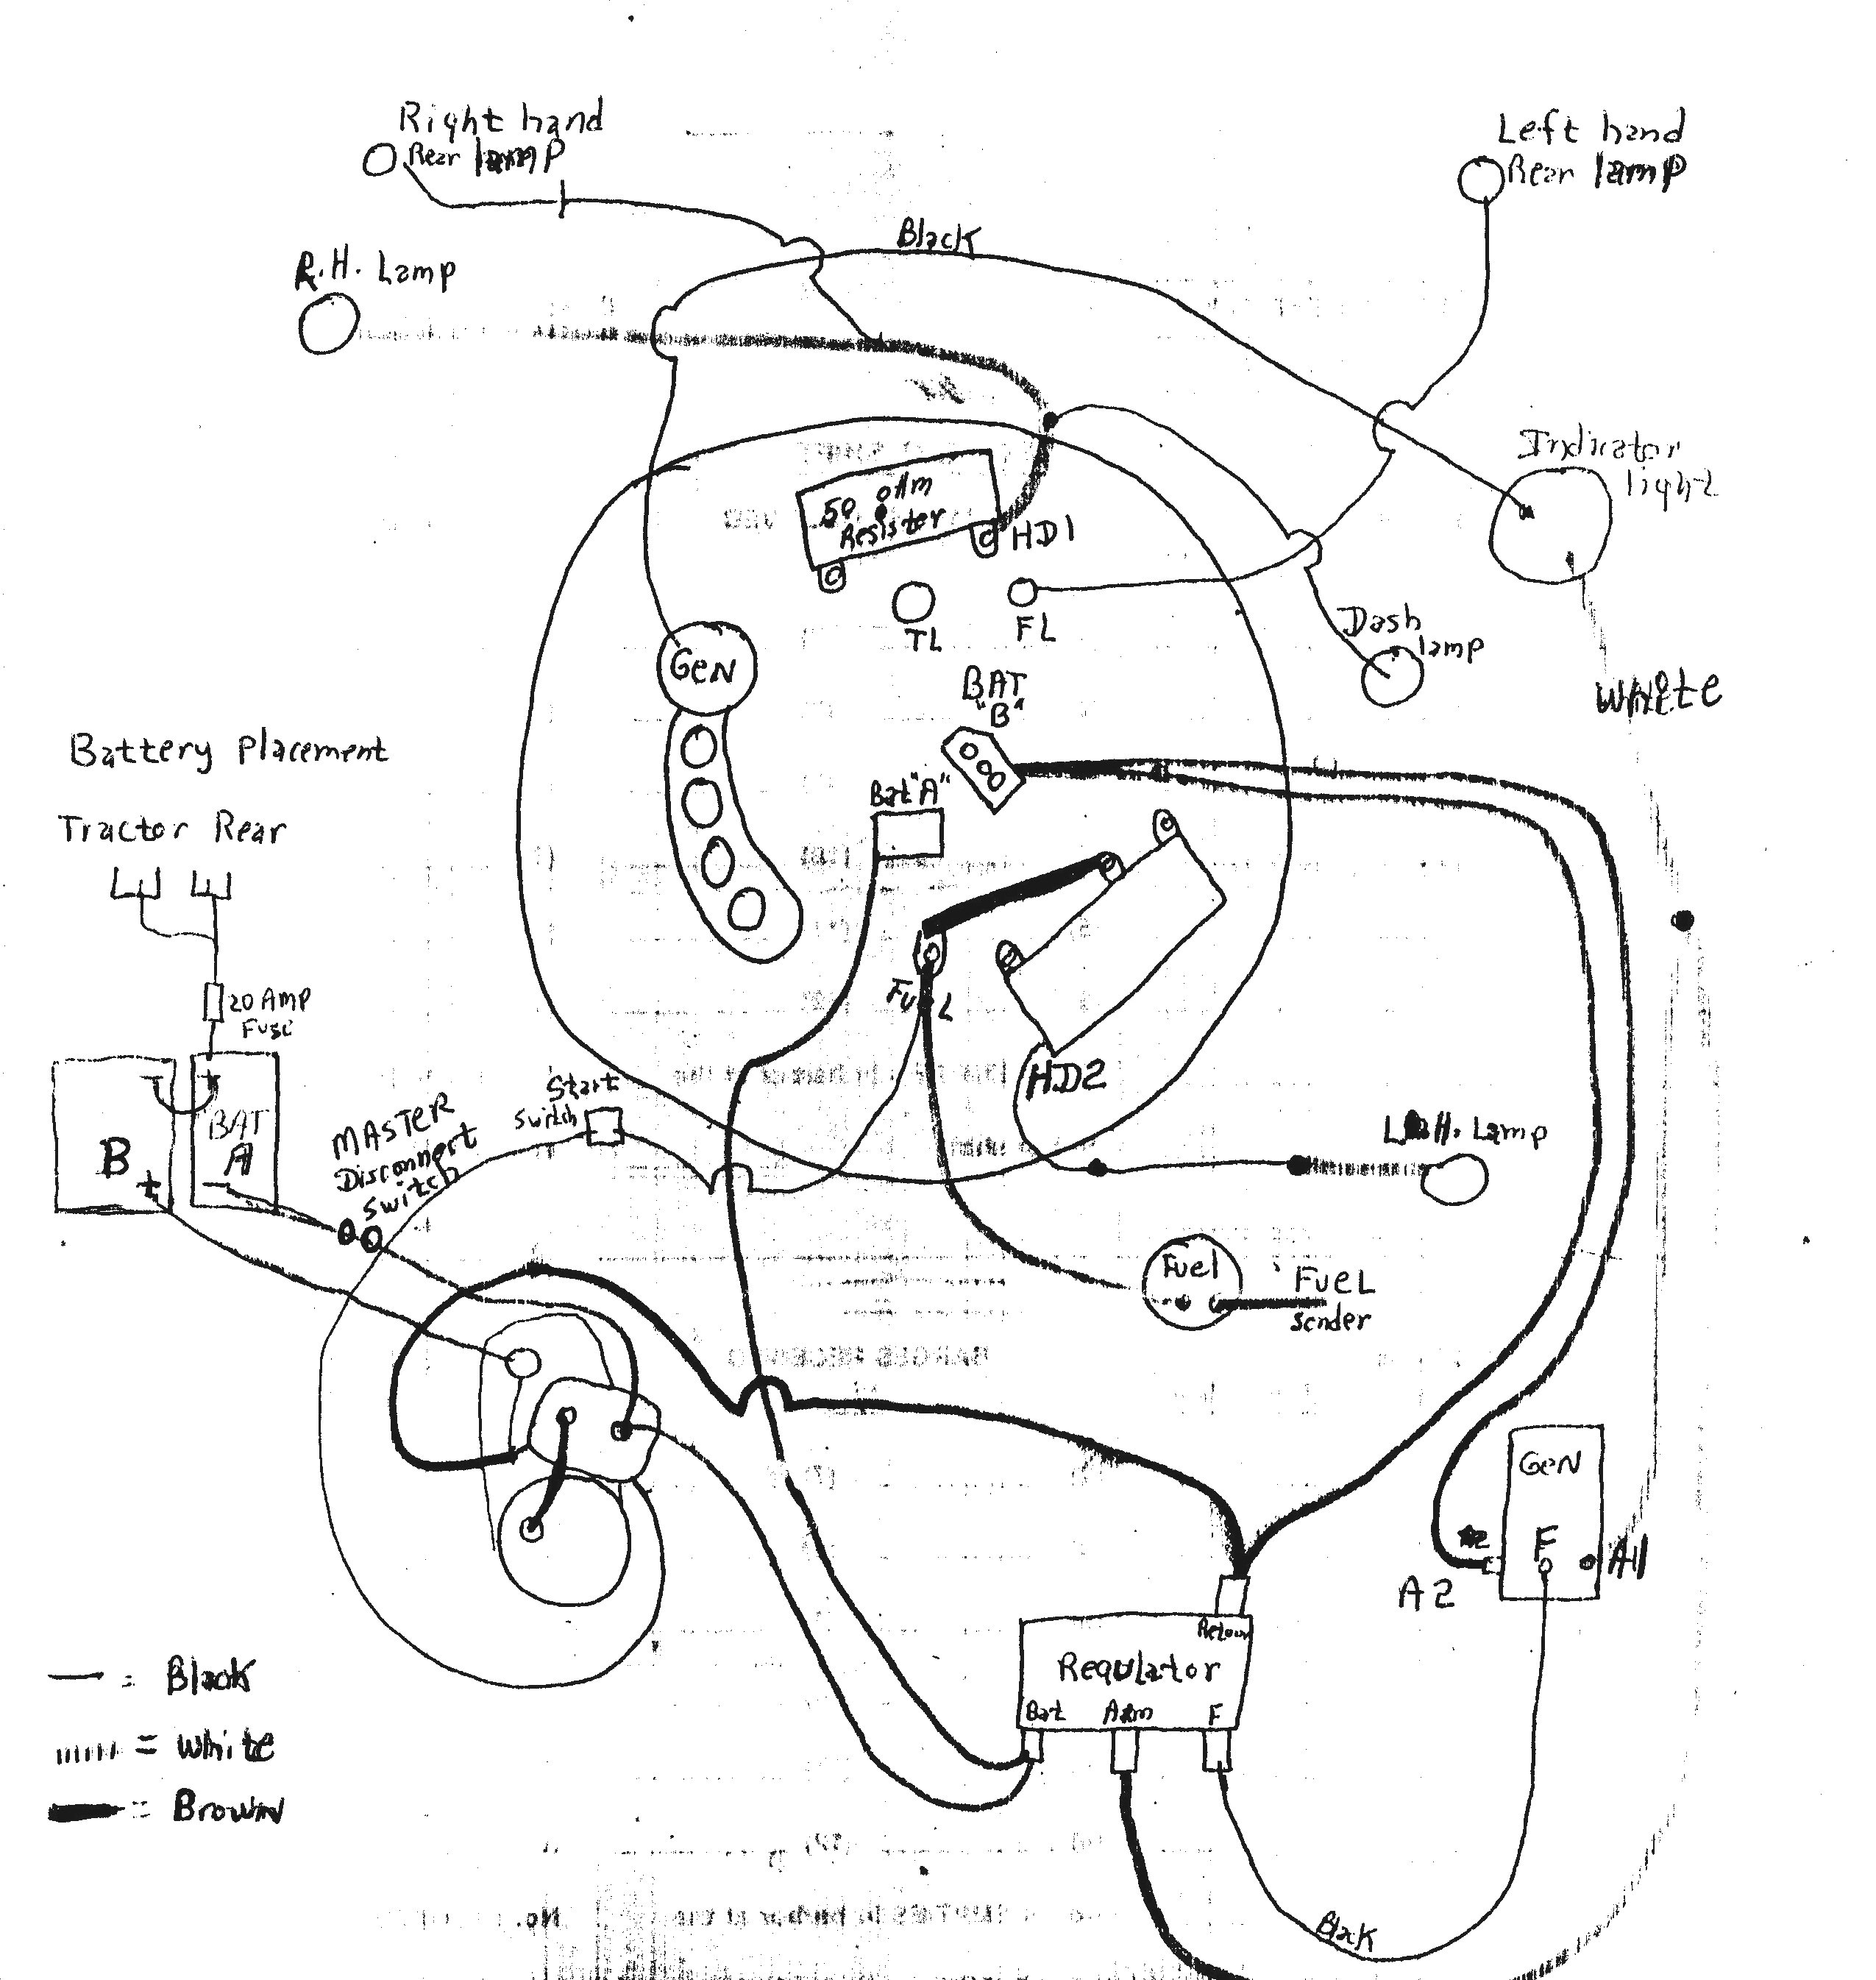 Mower Seat Switch Diagram furthermore Wiring Diagram 455 John Deere Lawn Tractor likewise Craftsman Riding Mower Solenoid Location cF81AMWUtACh8JrHyB1AfsPeQVDjvhllawg 7CiatNd4LfGt63 w9M0pnstw2q1PbFfmqCYud  nlEjRfceamIrQ further P 13172 John Deere 42 D100 Series Deck Parts Diagram moreover John Deere Stx38 Wiring Diagram. on john deere l130 safety switch wiring diagrams